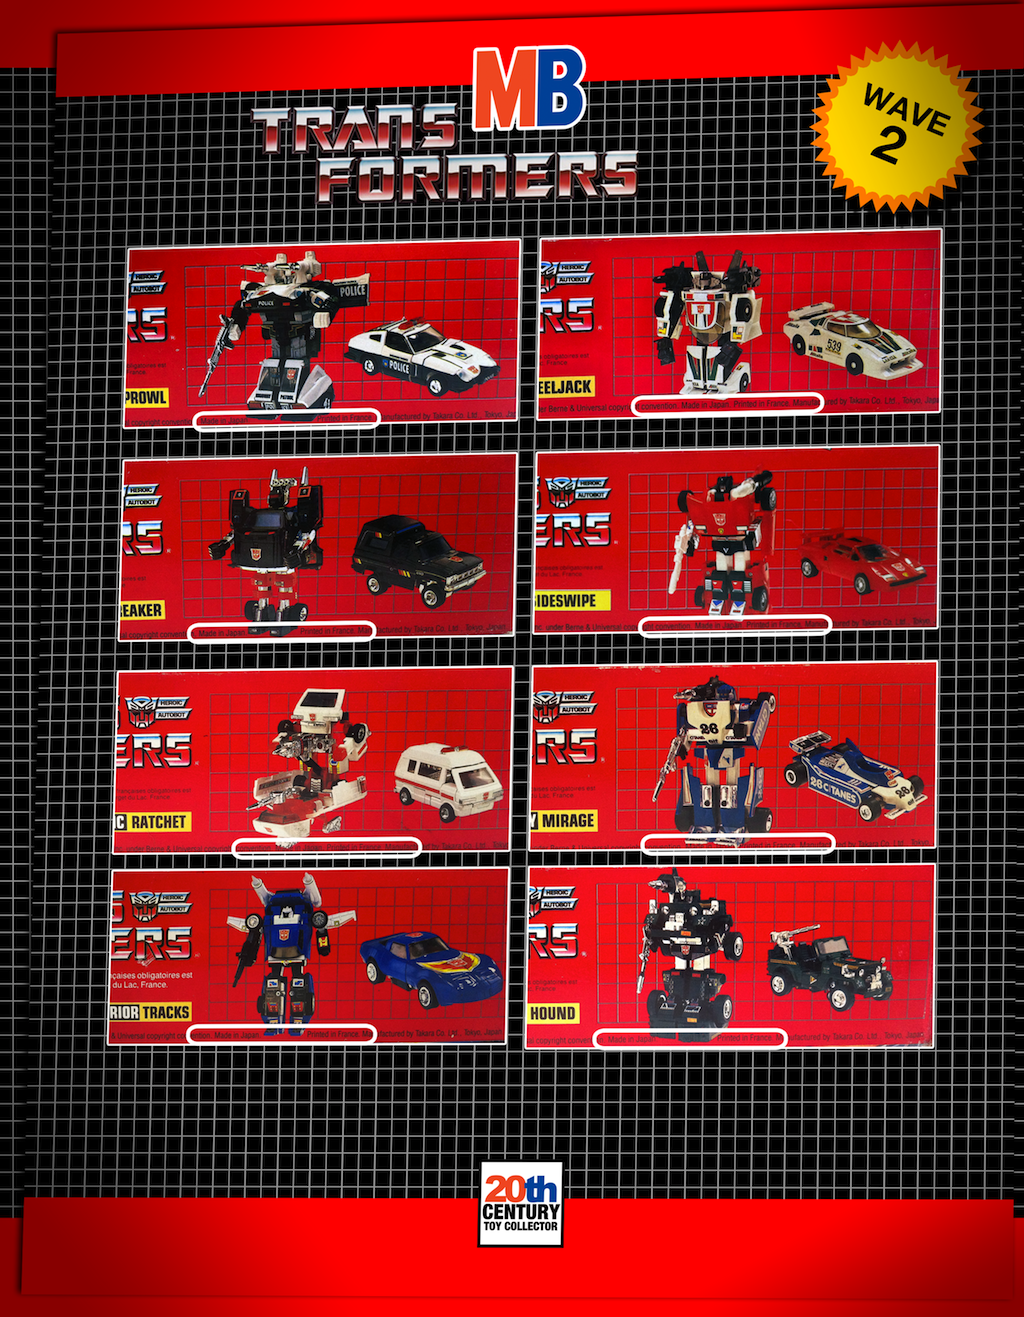 20th Century Toy Collector  MB Transformers Part 4